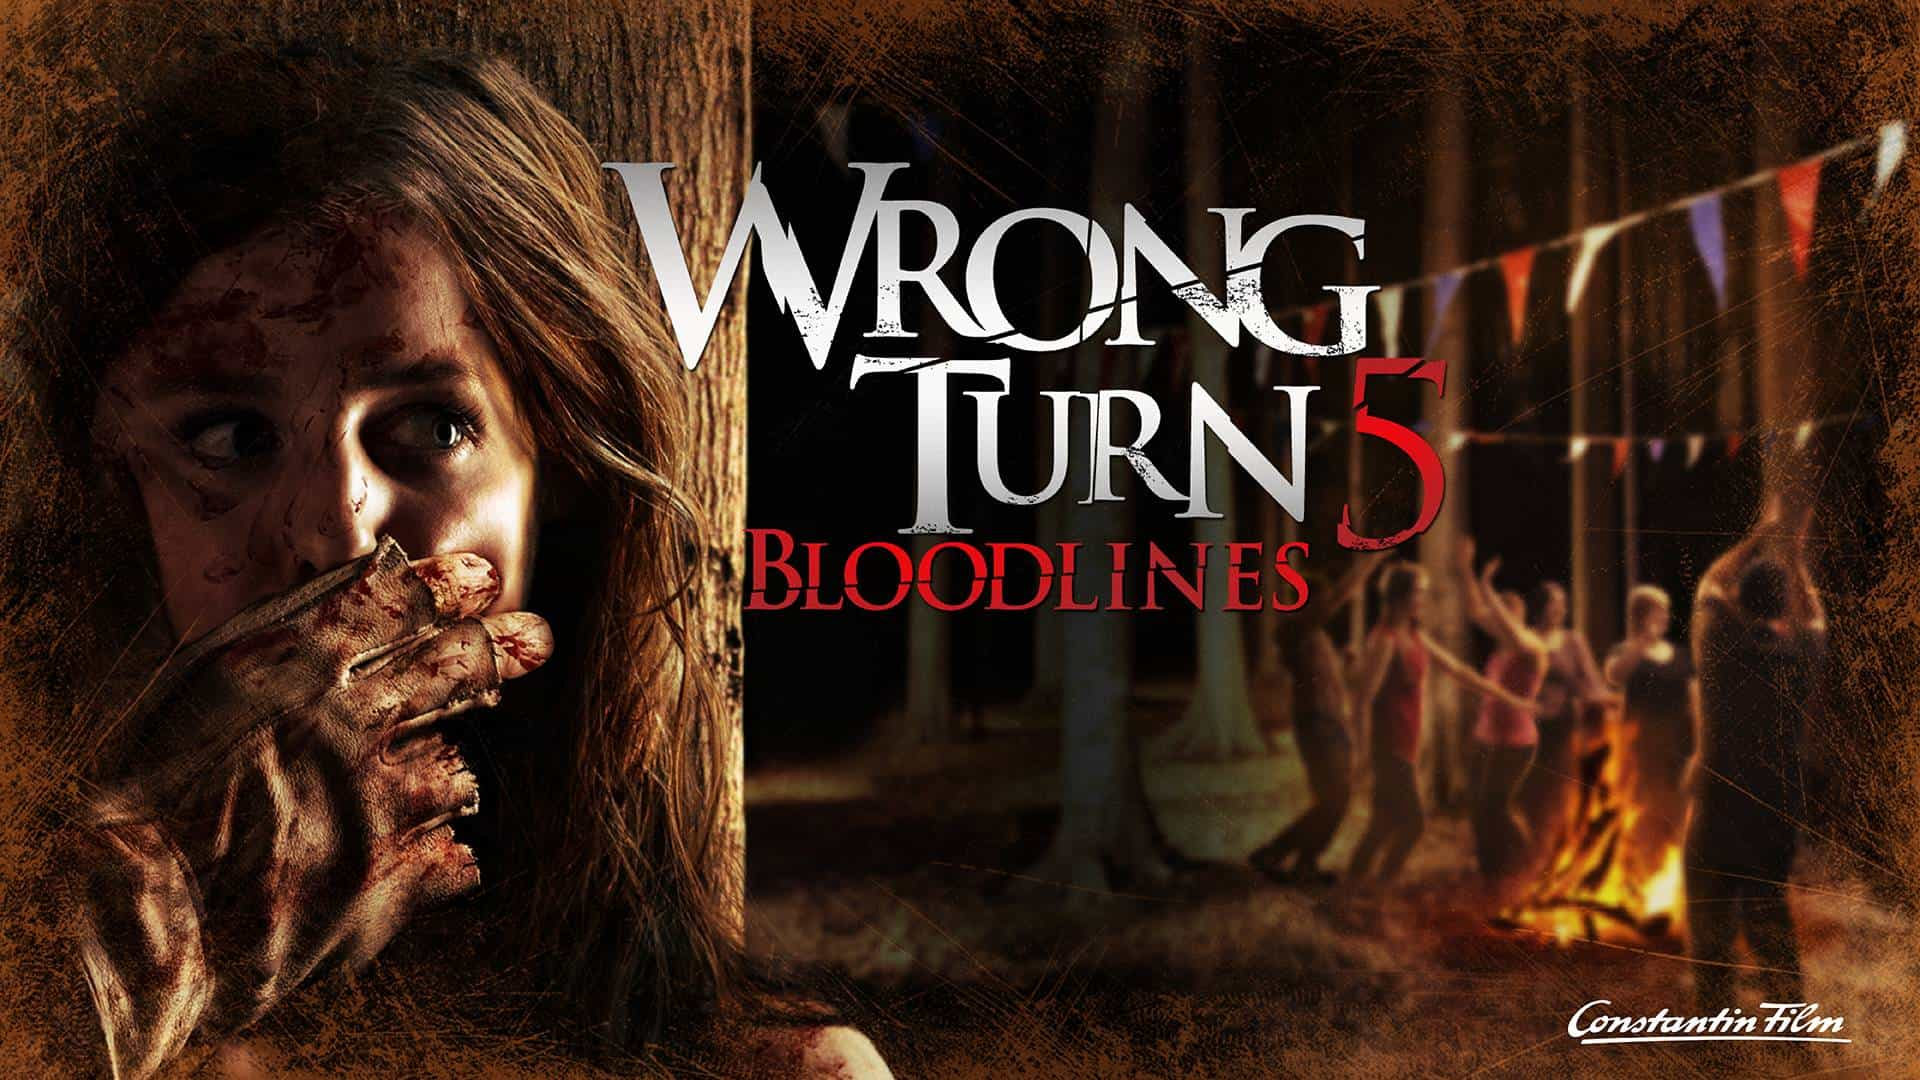 horror movie review wrong turn 5 bloodlines 2012